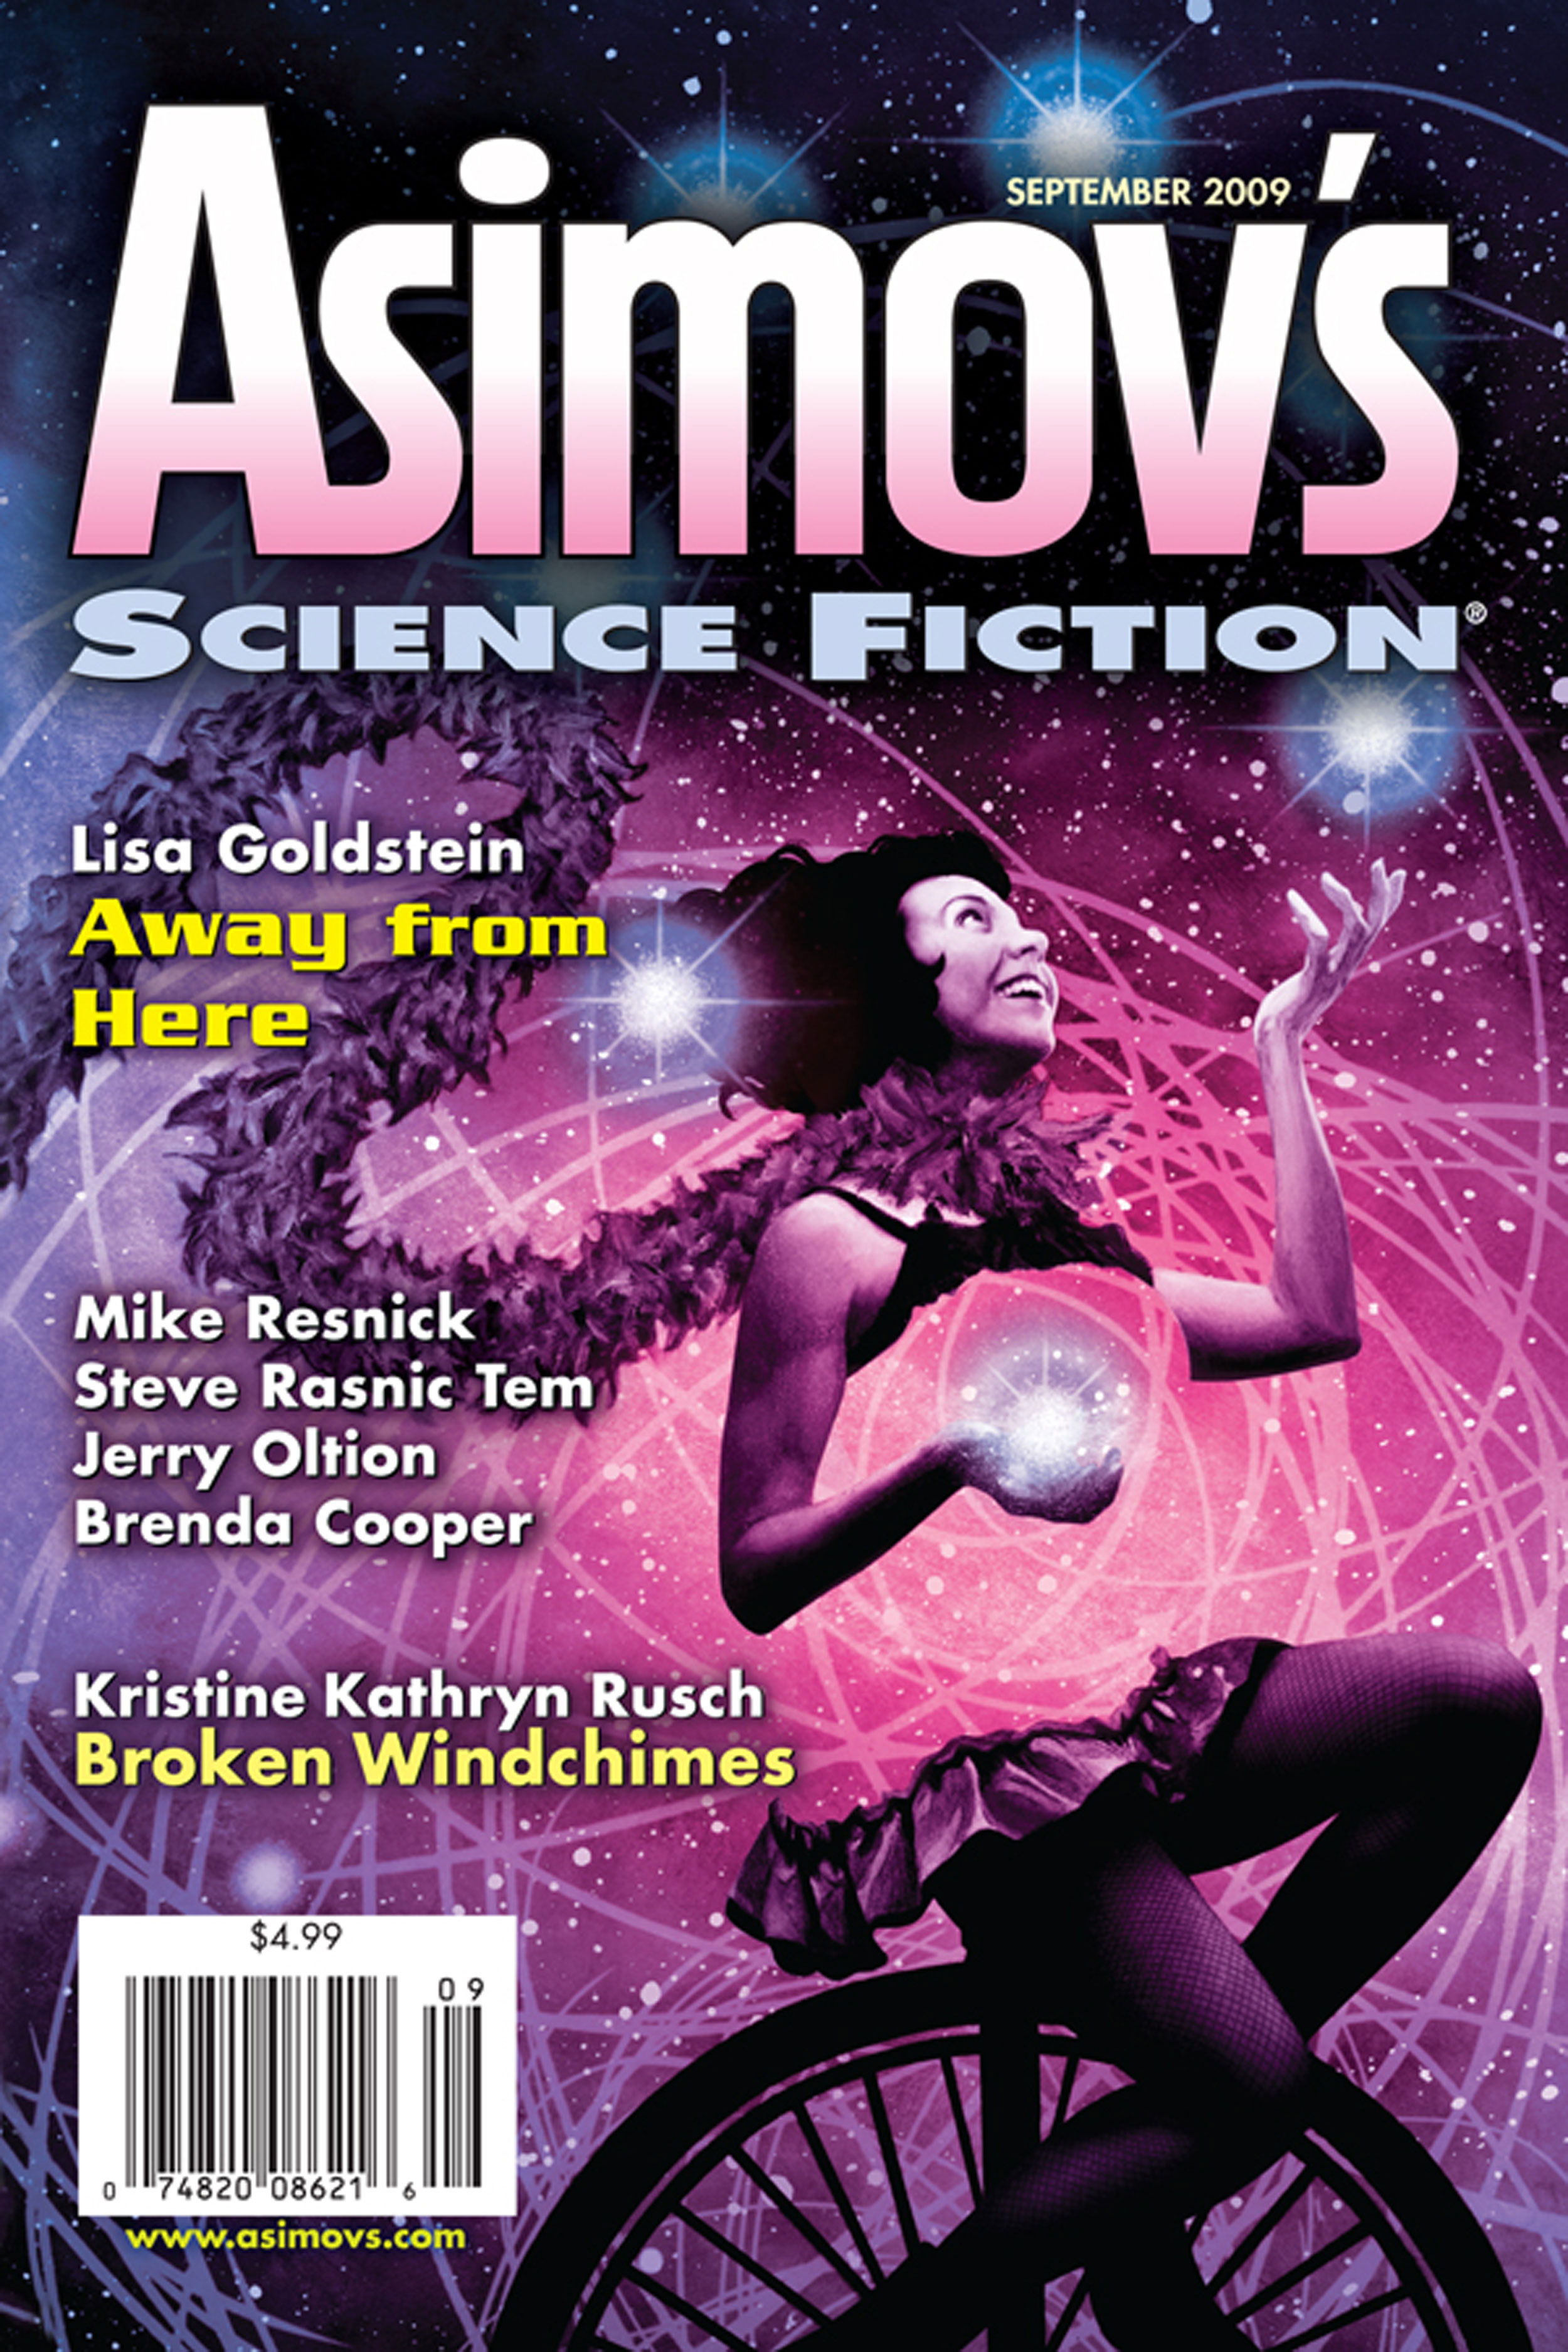 Science fiction writers wanted